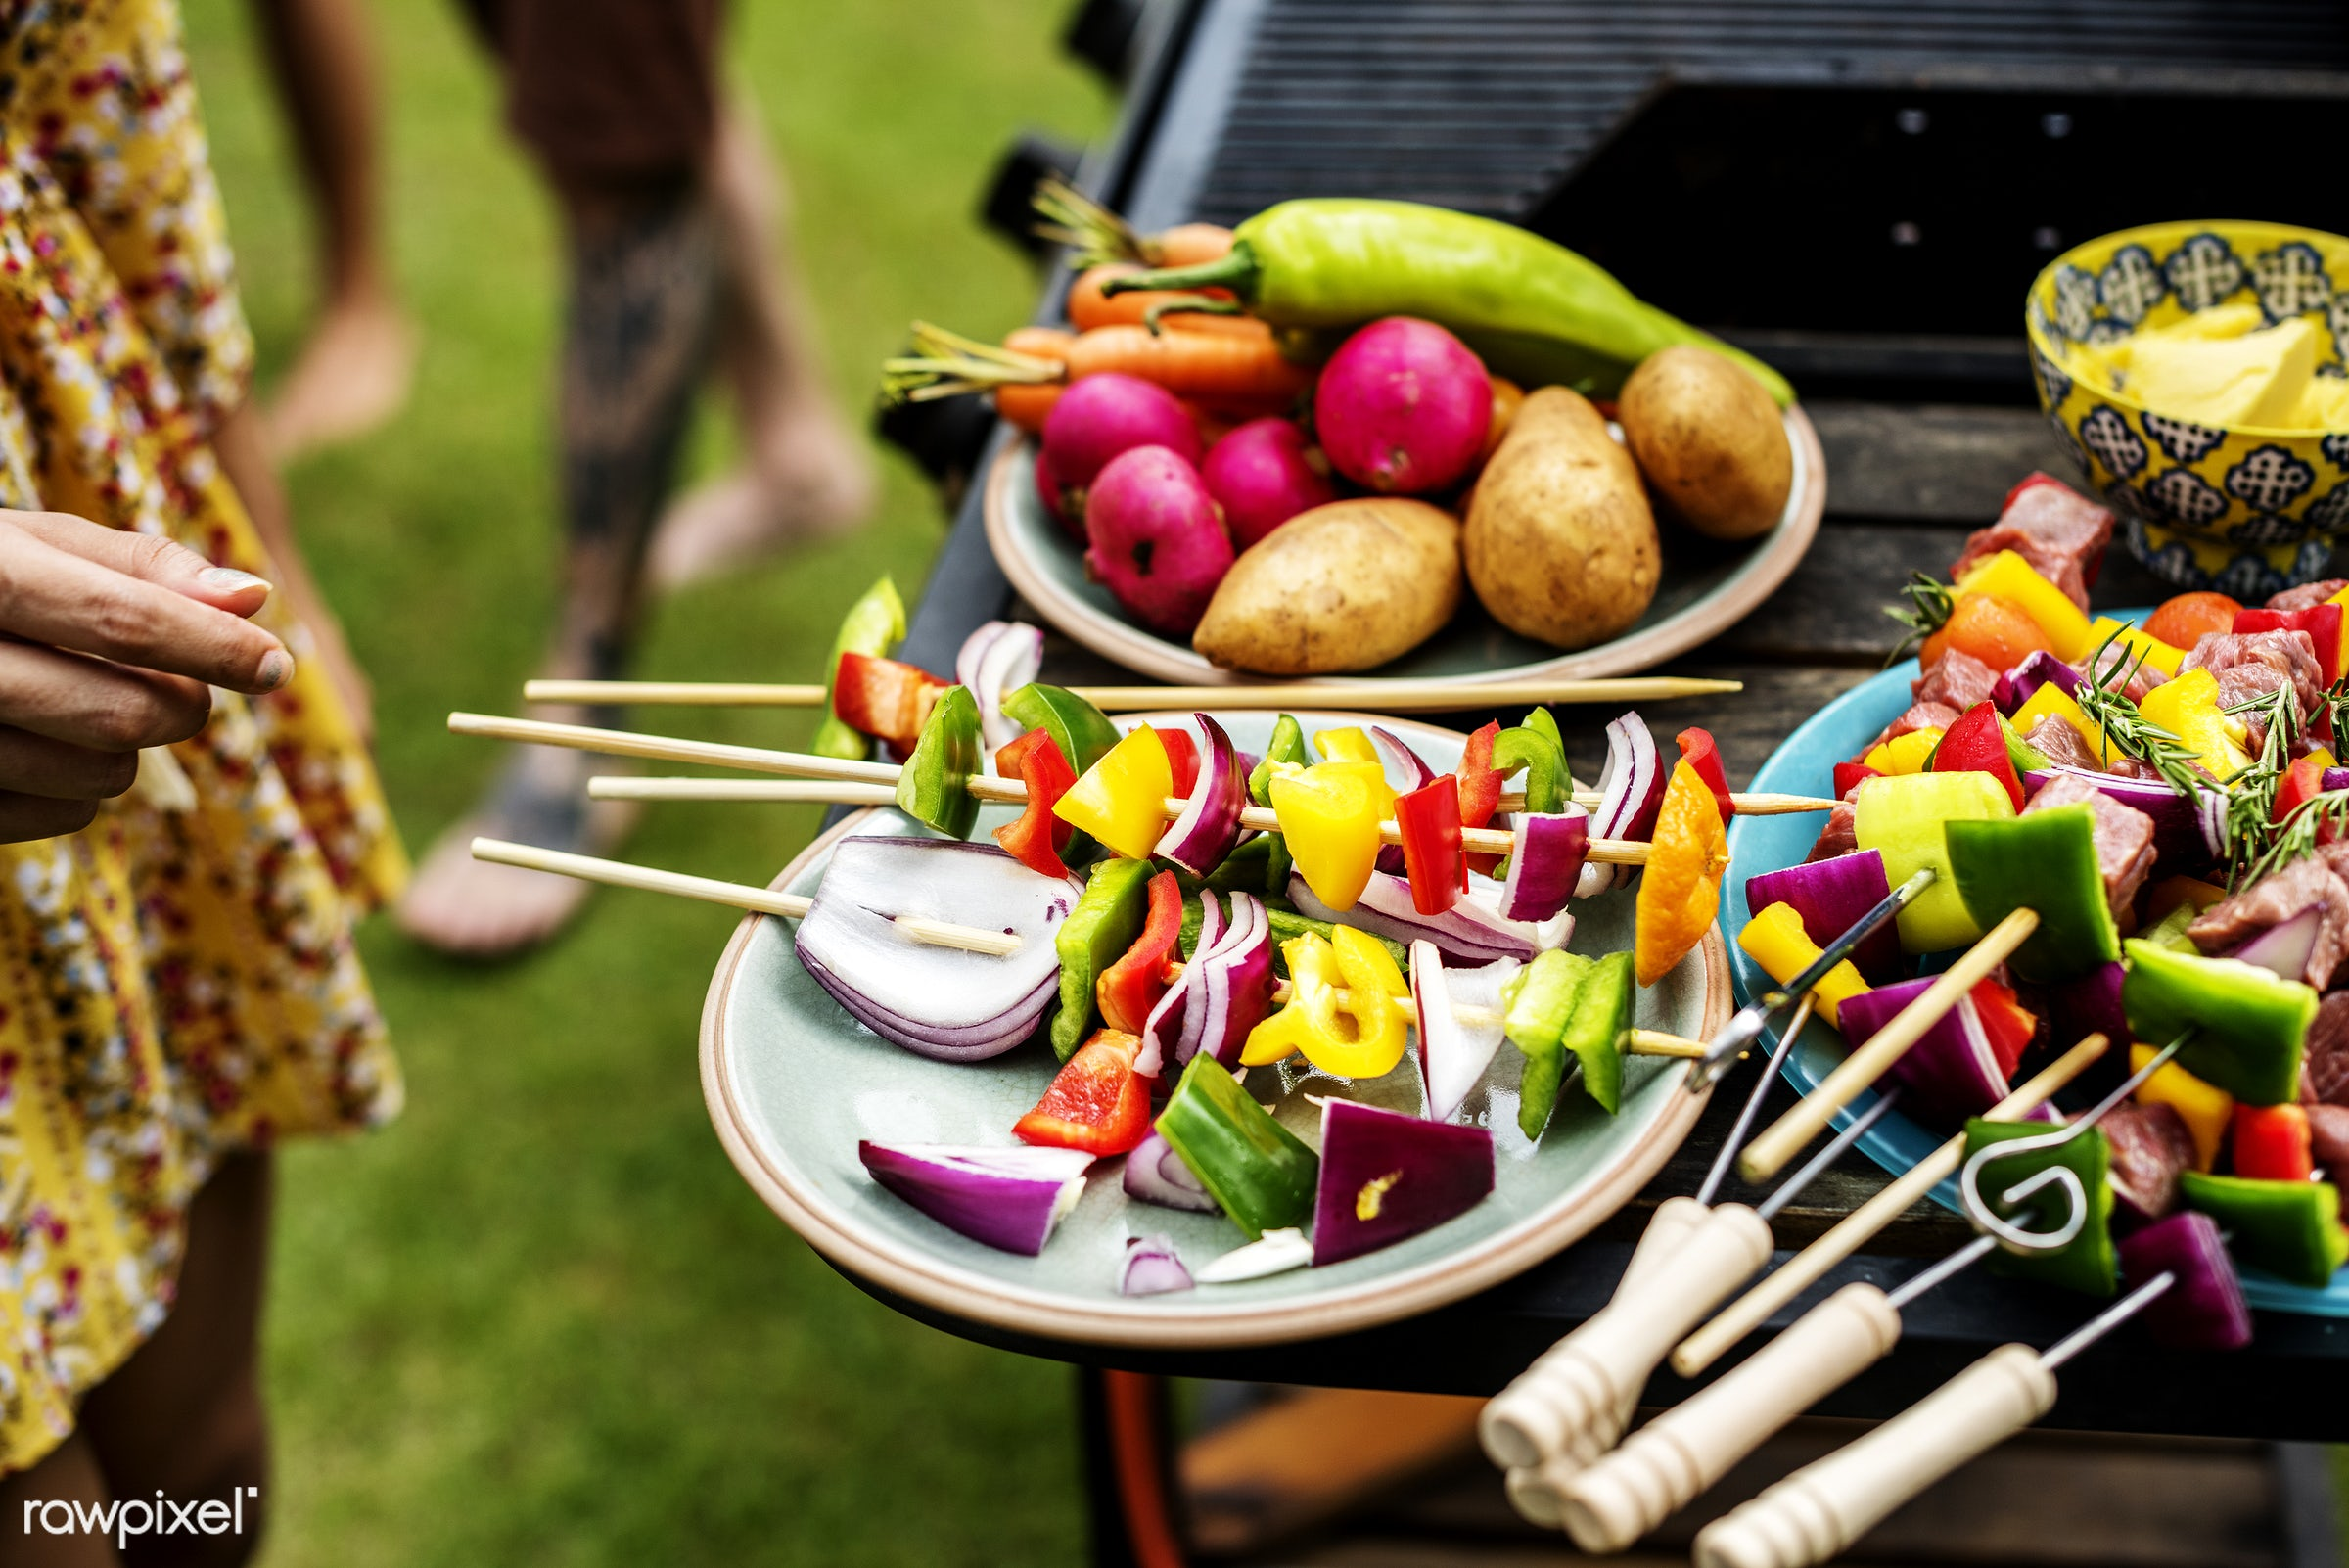 bbq, barbecue, charcoals, cooking, diverse, food, fresh, grass, grill, hand, holiday, homemade, leisure, meal, meats,...